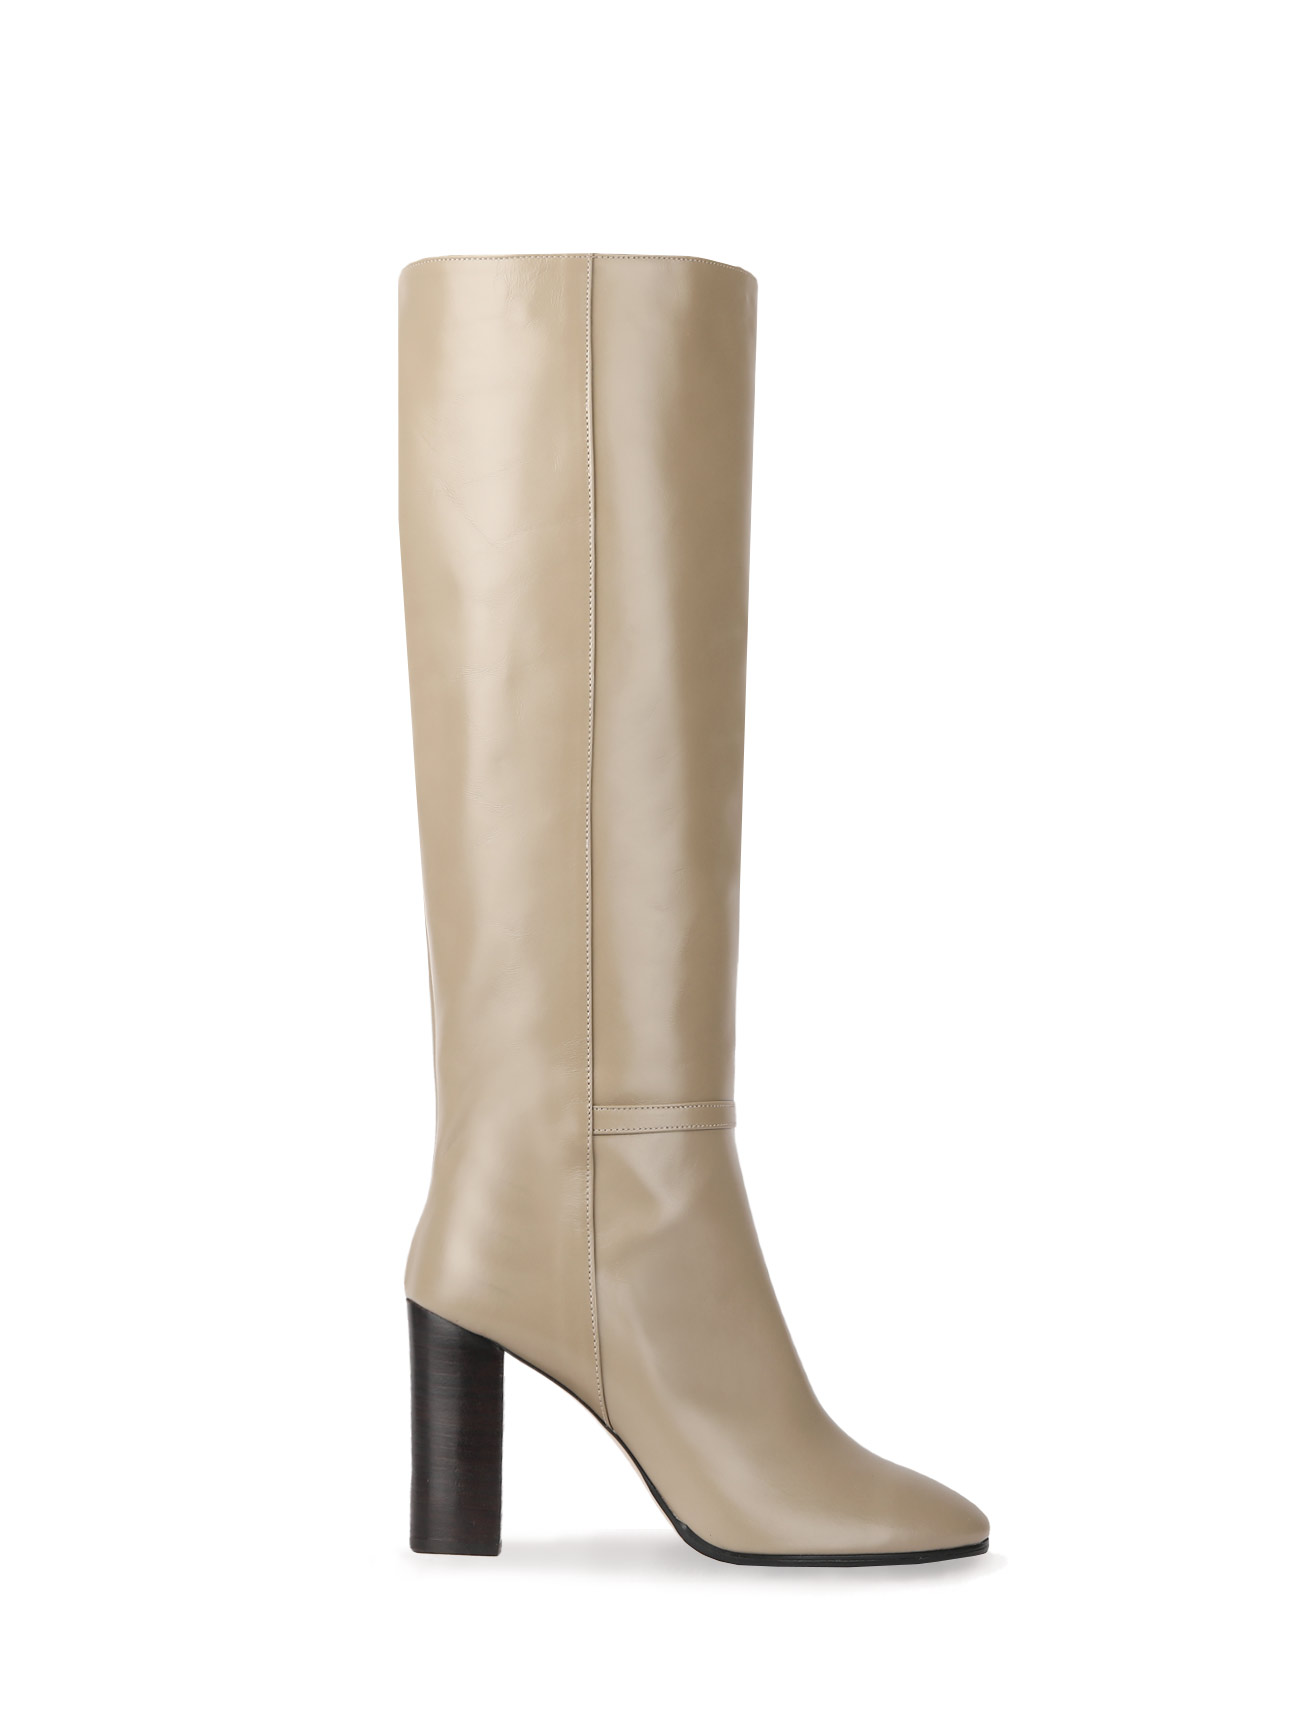 KATE LEATHER KNEE BOOTS (7cm, 9cm) - OLIVE